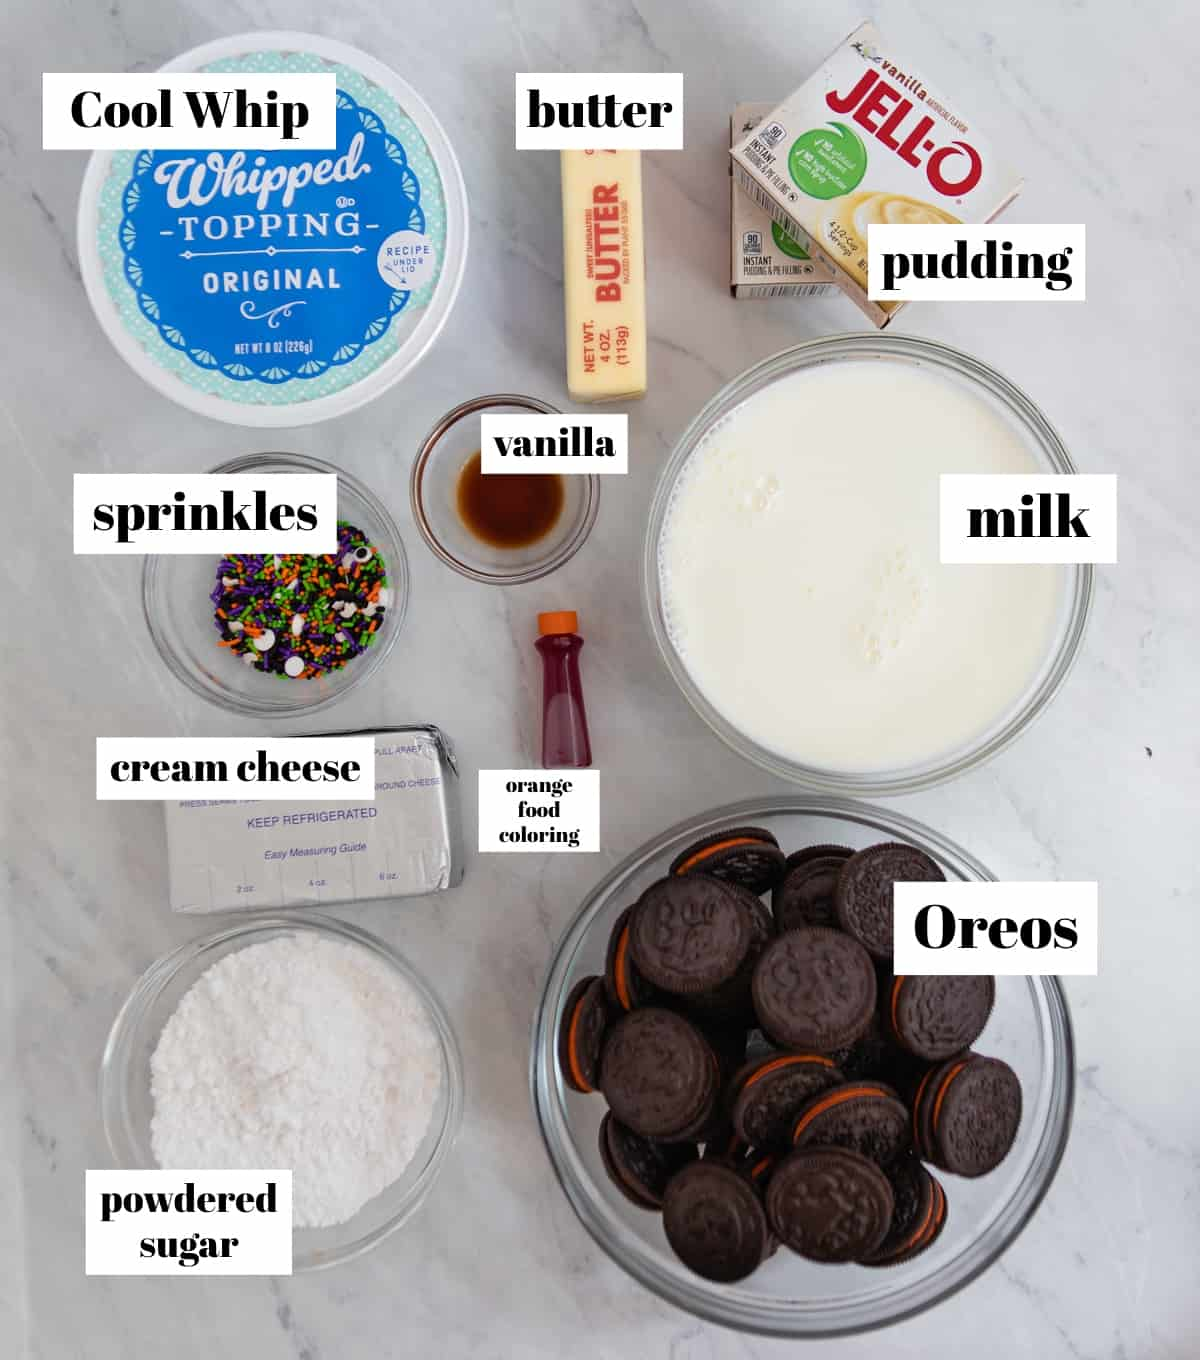 Whipped cream, cream cheese, oreos, pudding and other ingredients labeled on counter.